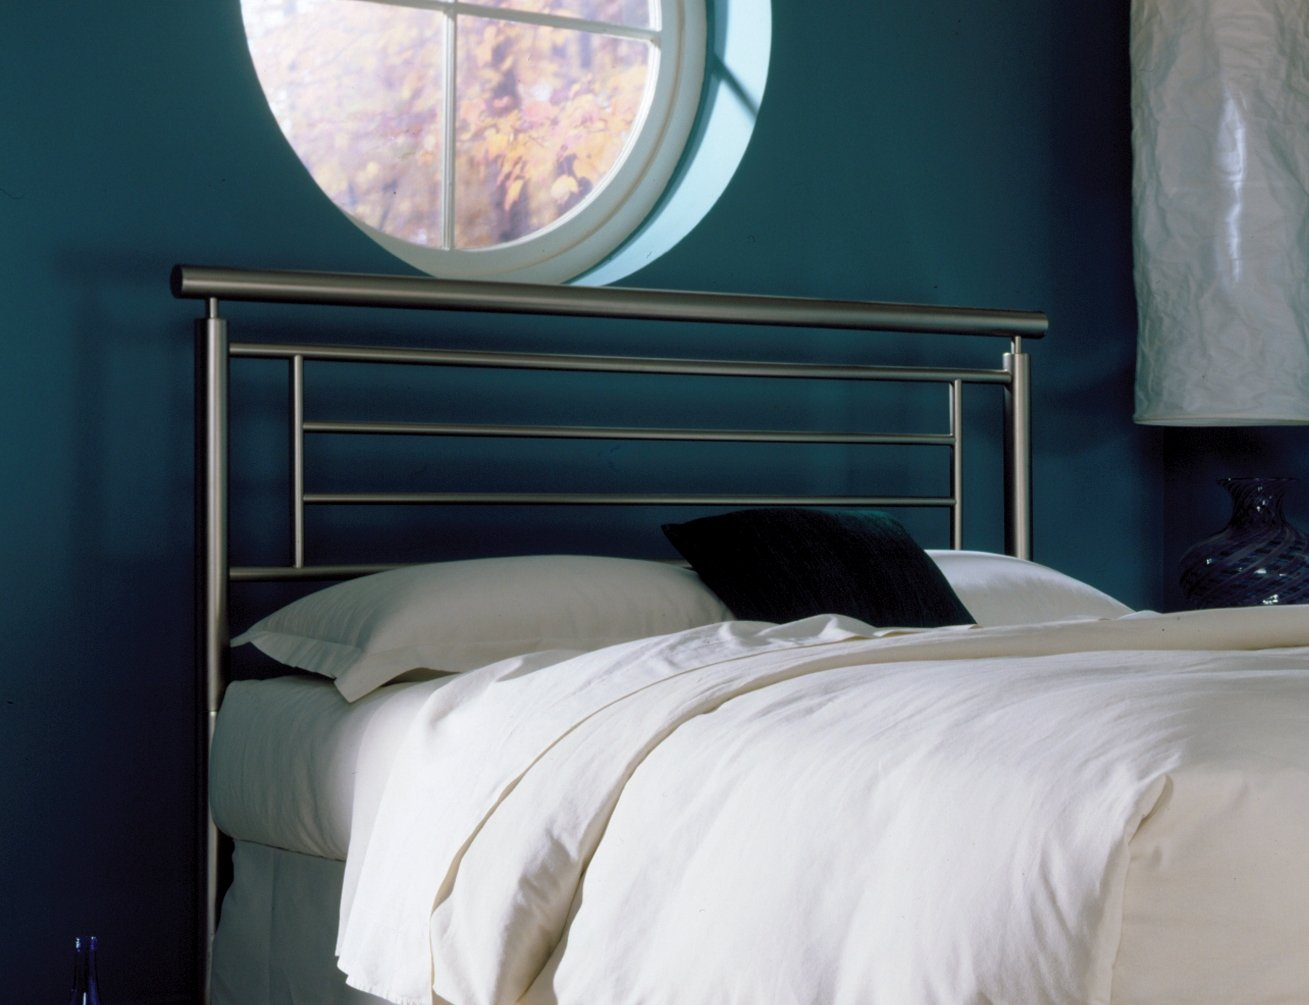 amazoncom chatham metal headboard with rounded top rail satin finish queen fbg chatham metal bed